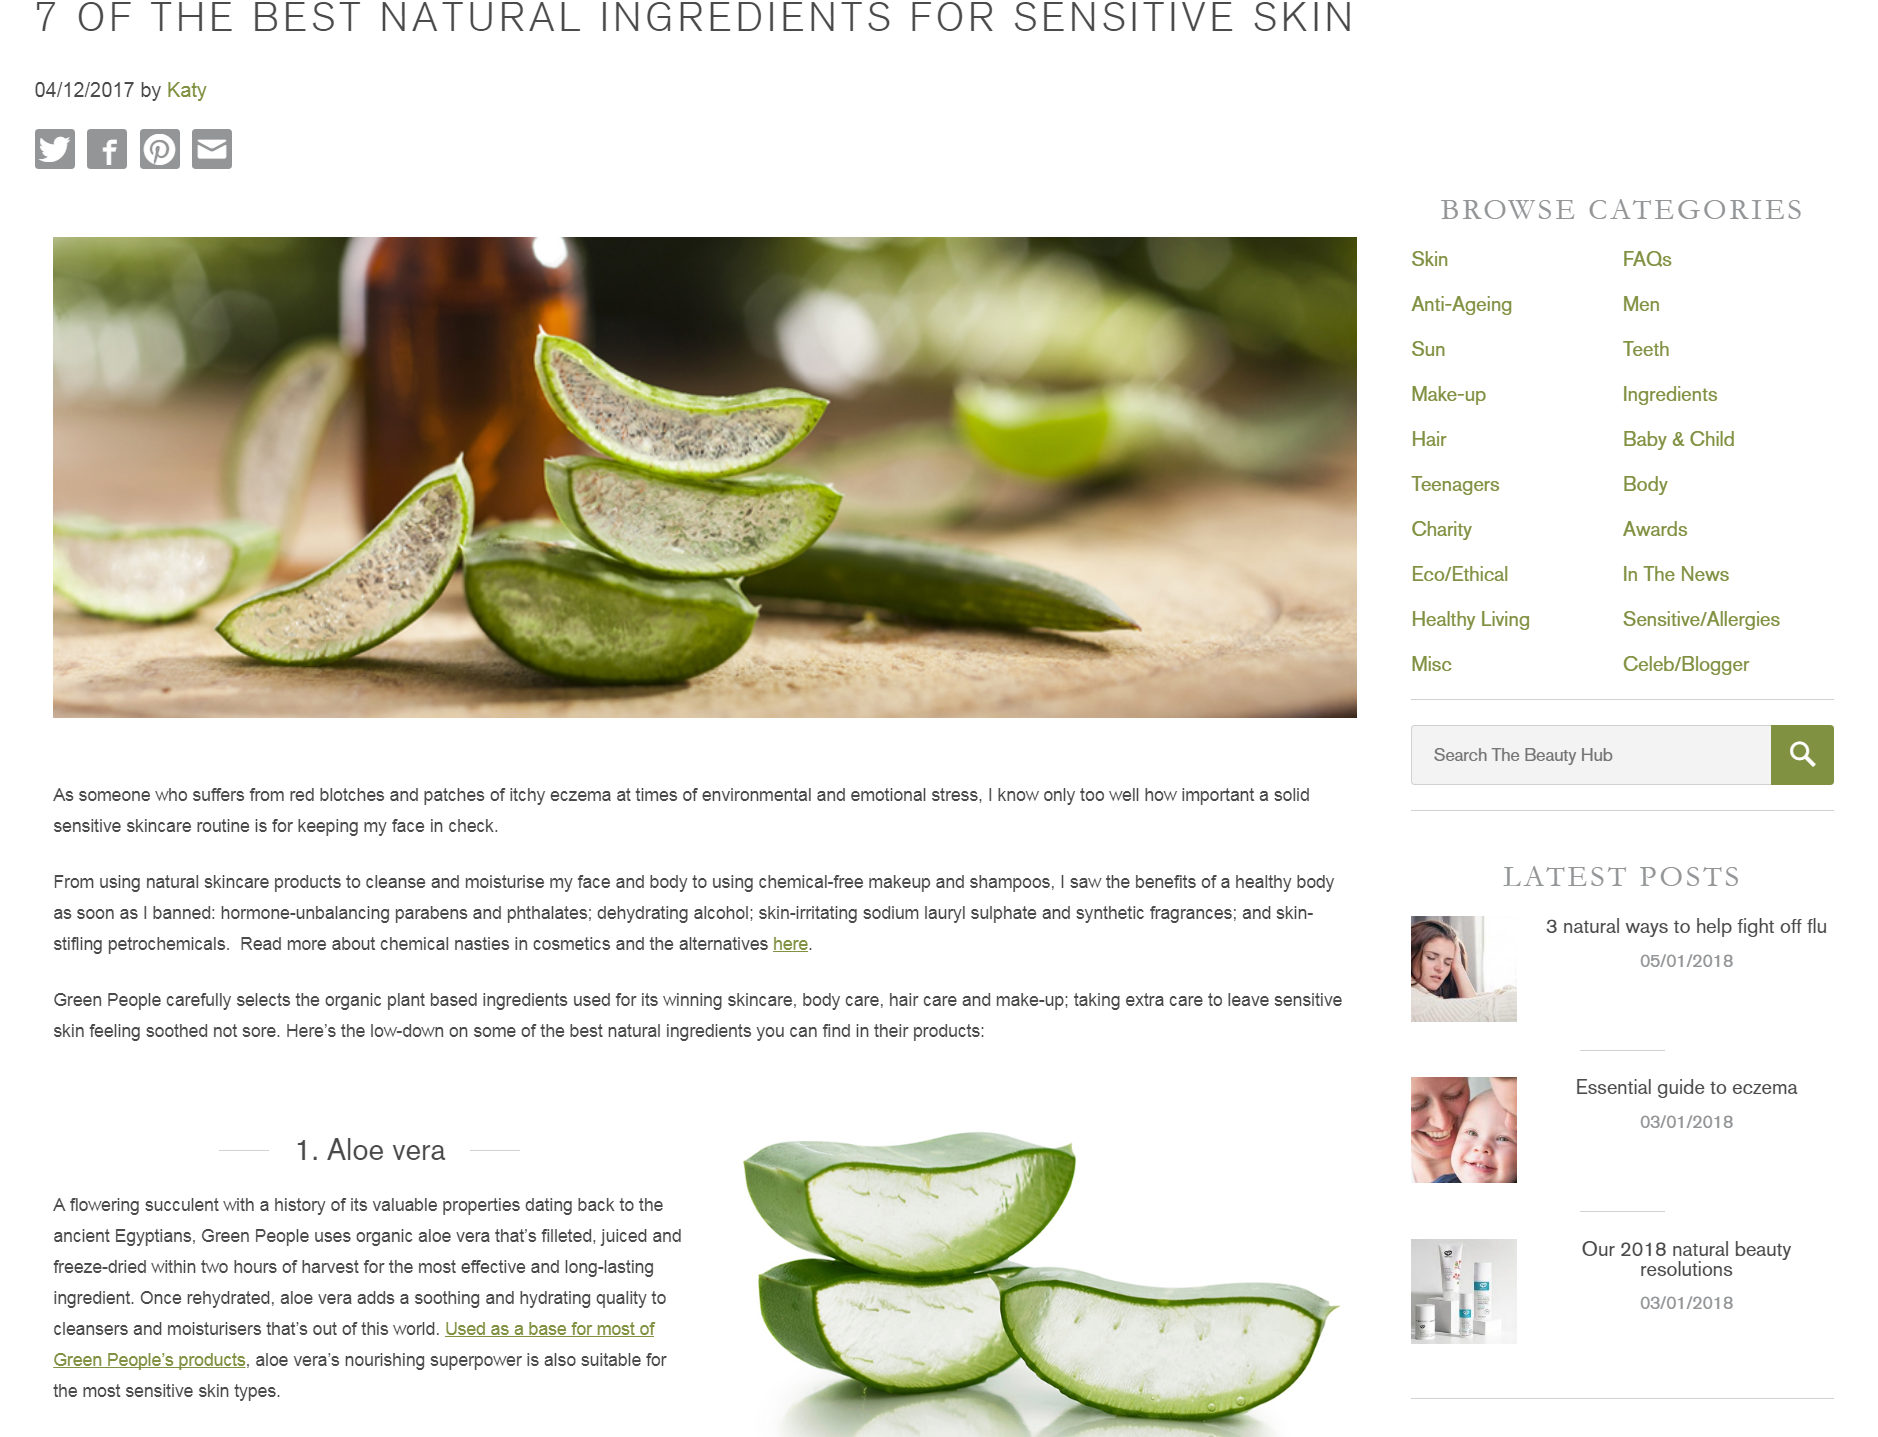 Best natural ingredients for sensitive skin - Green People Beauty Hub blog